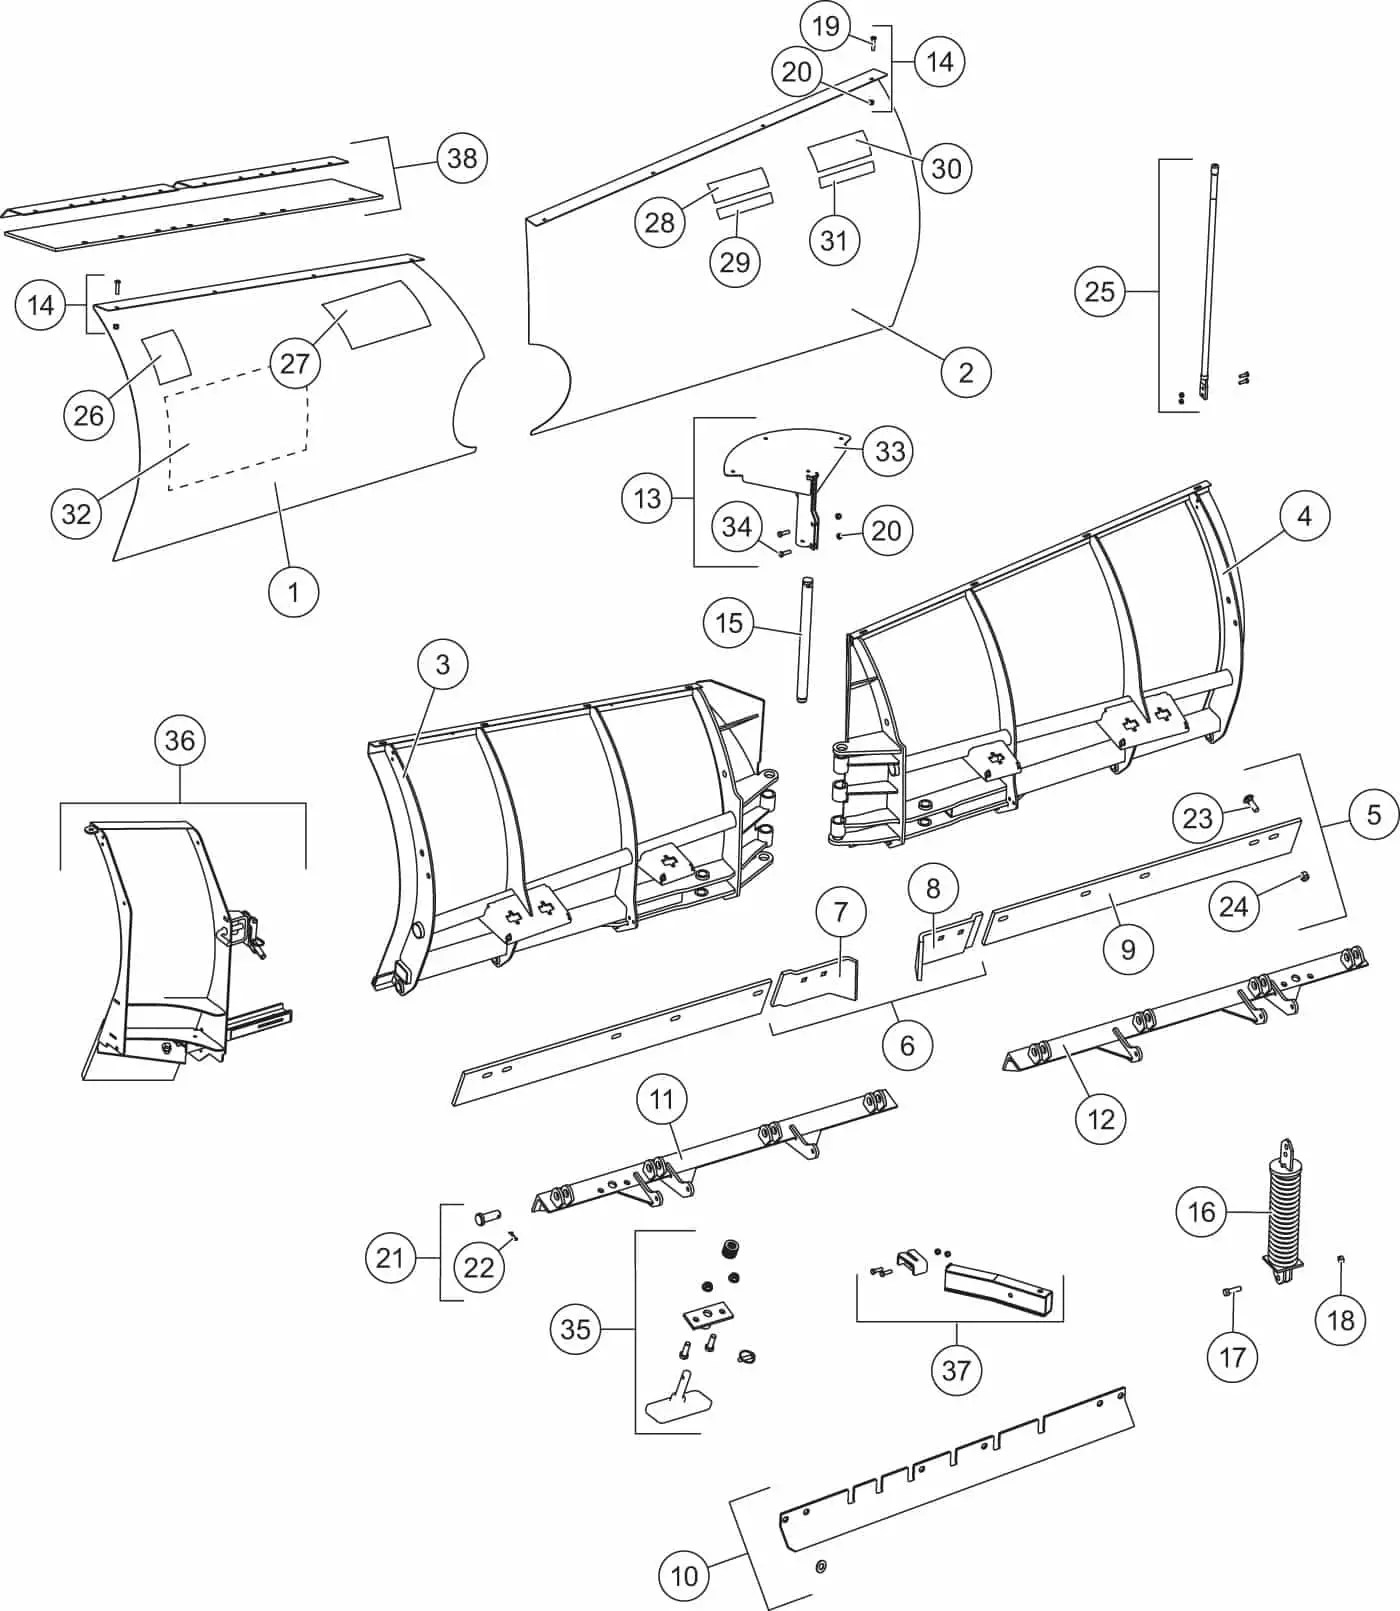 29 Western Snow Plow Parts Diagram